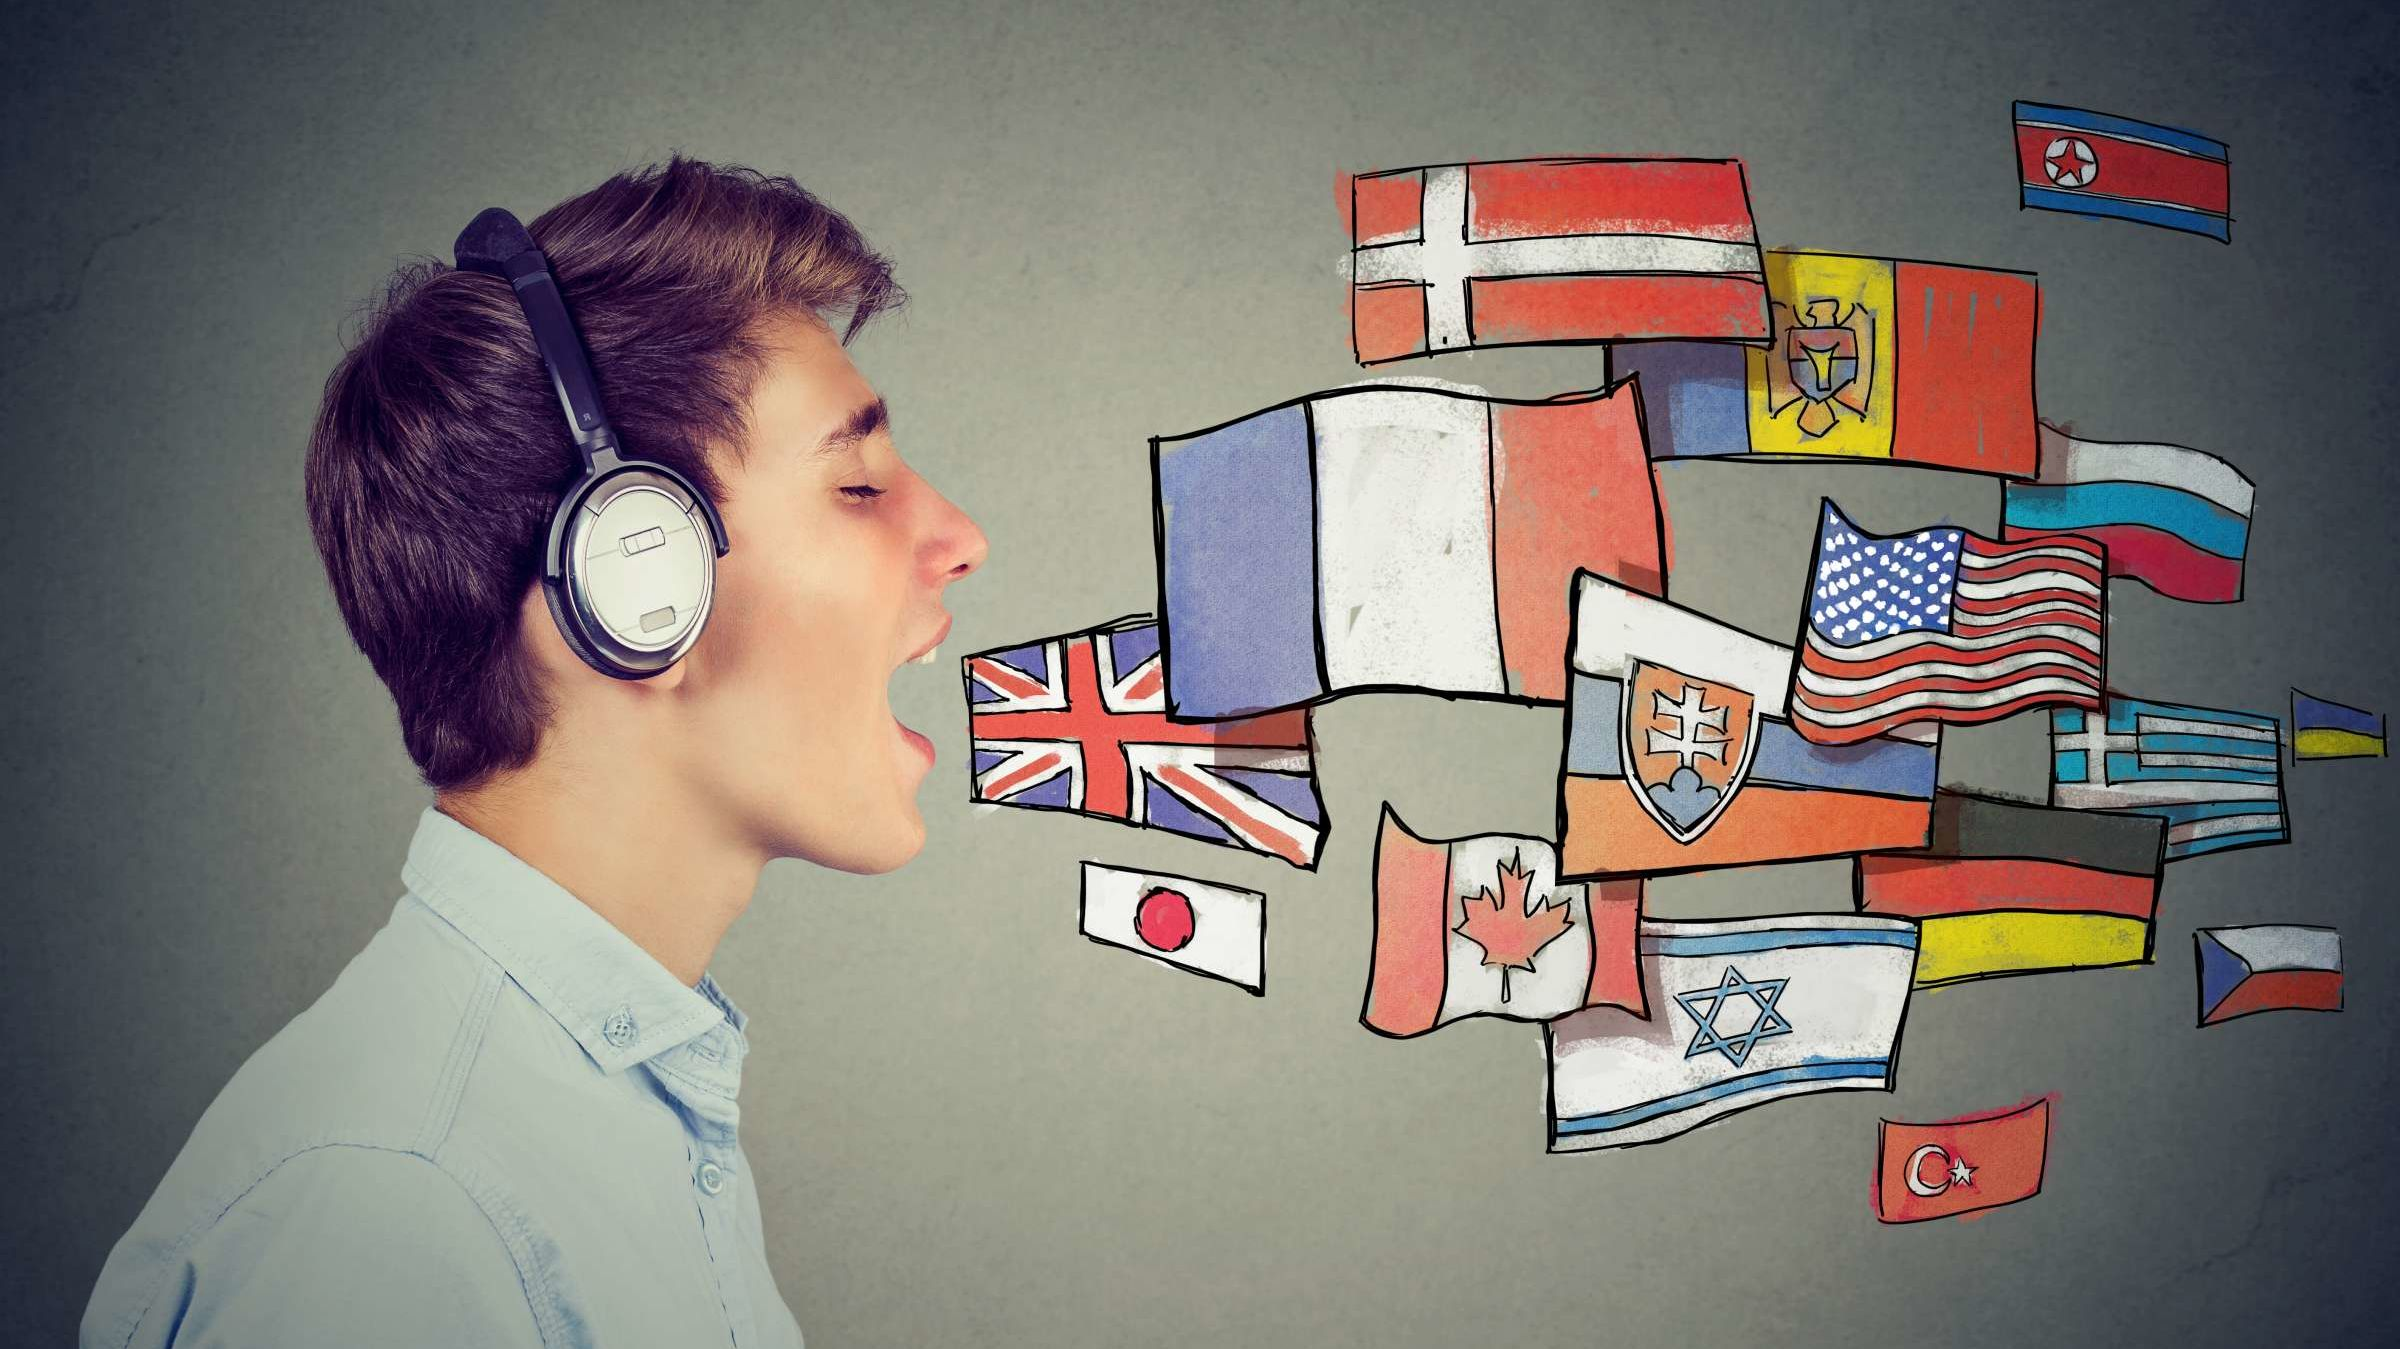 Rosetta Stone Teaches New Languages Without Making You Memorize a Thing